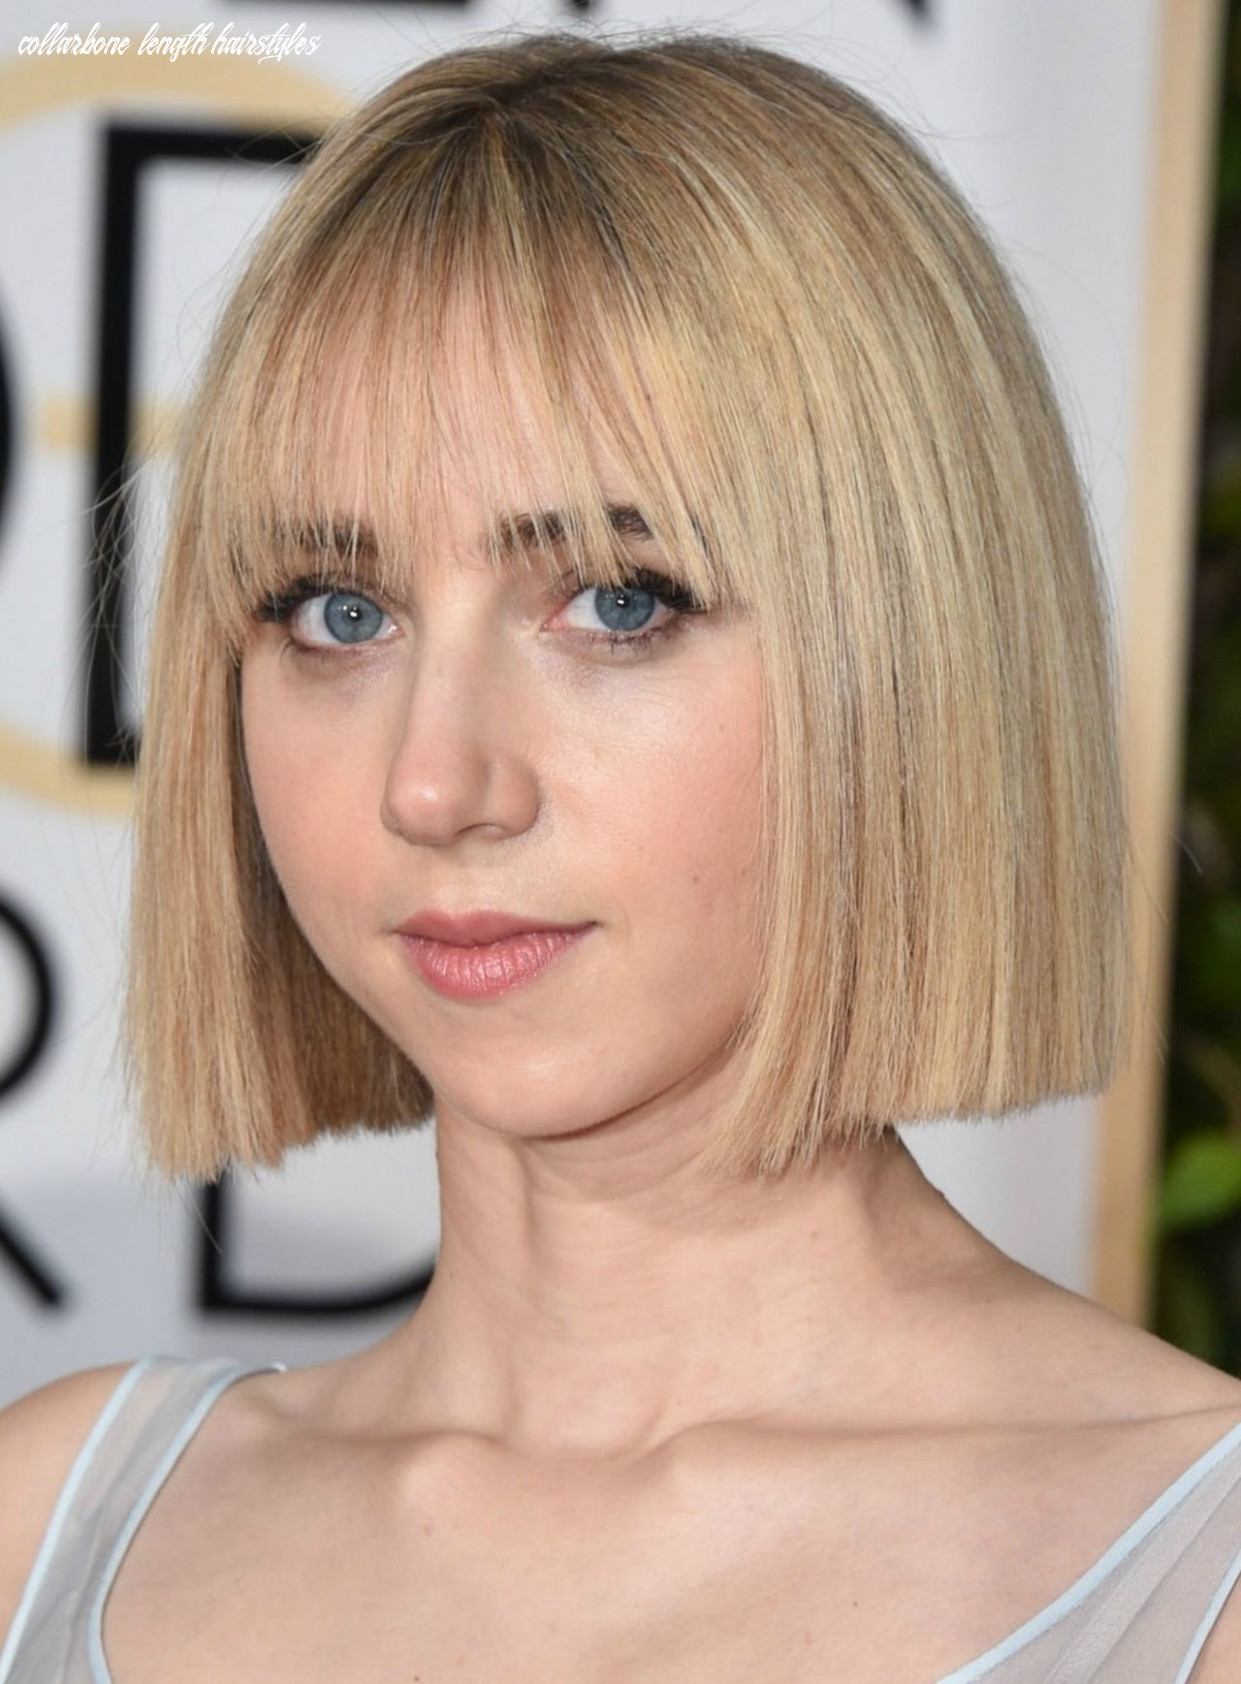 Collarbone length hairstyles with bangs women hair cuts collarbone length hairstyles